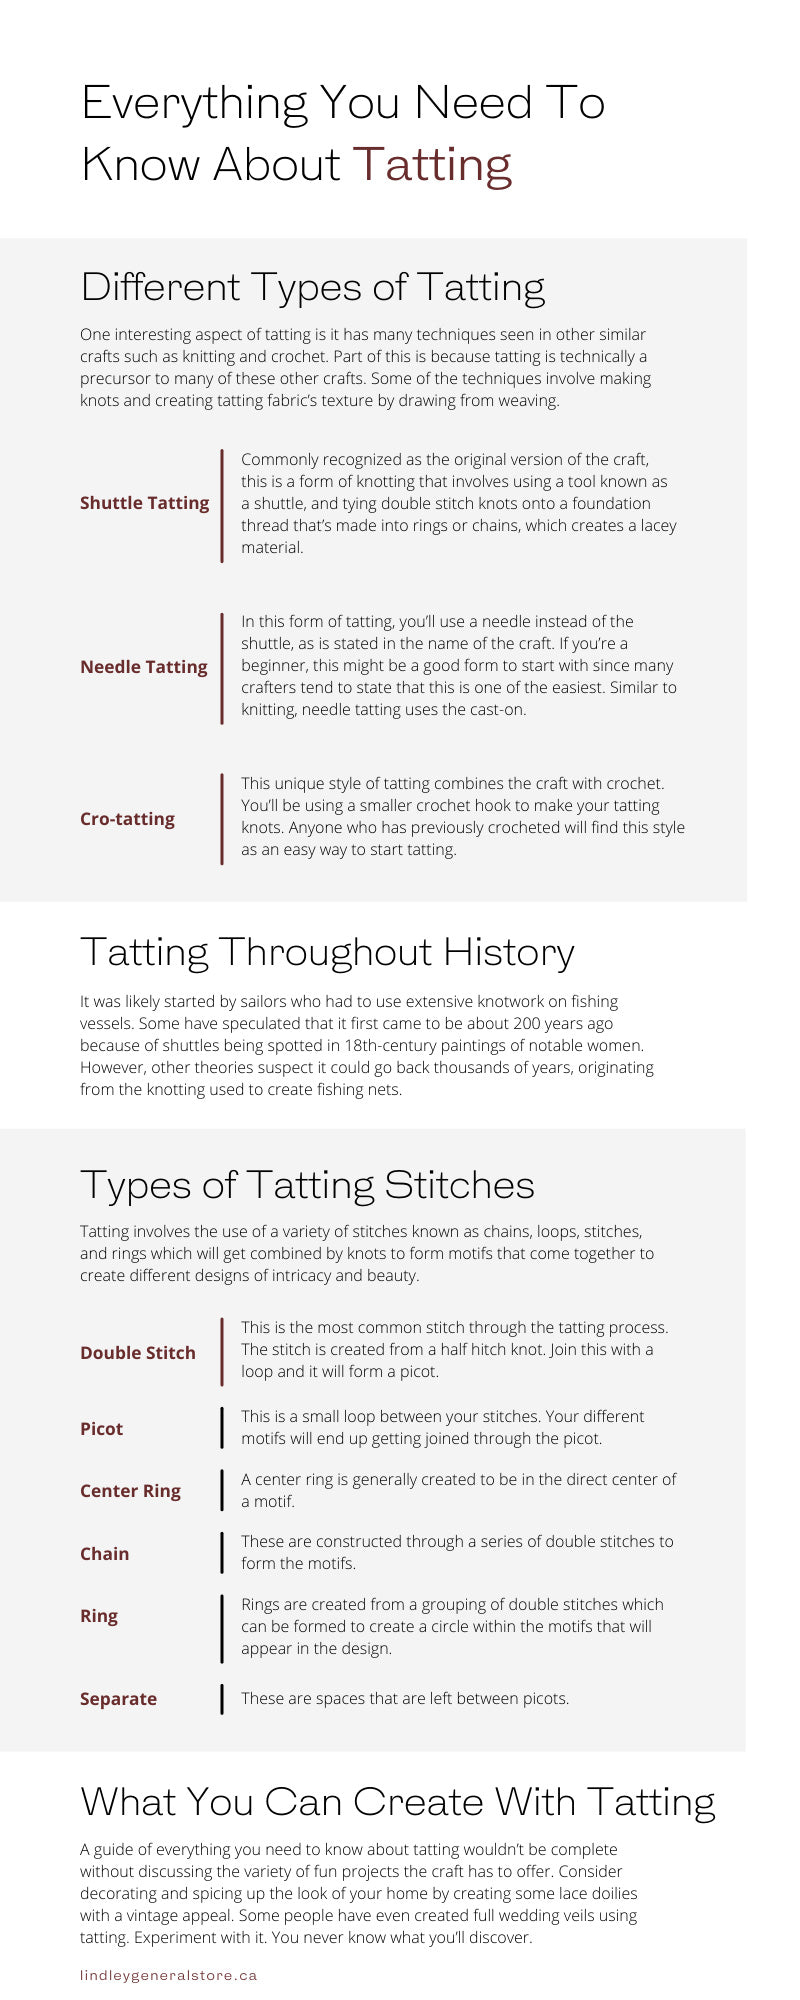 Everything You Need To Know About Tatting